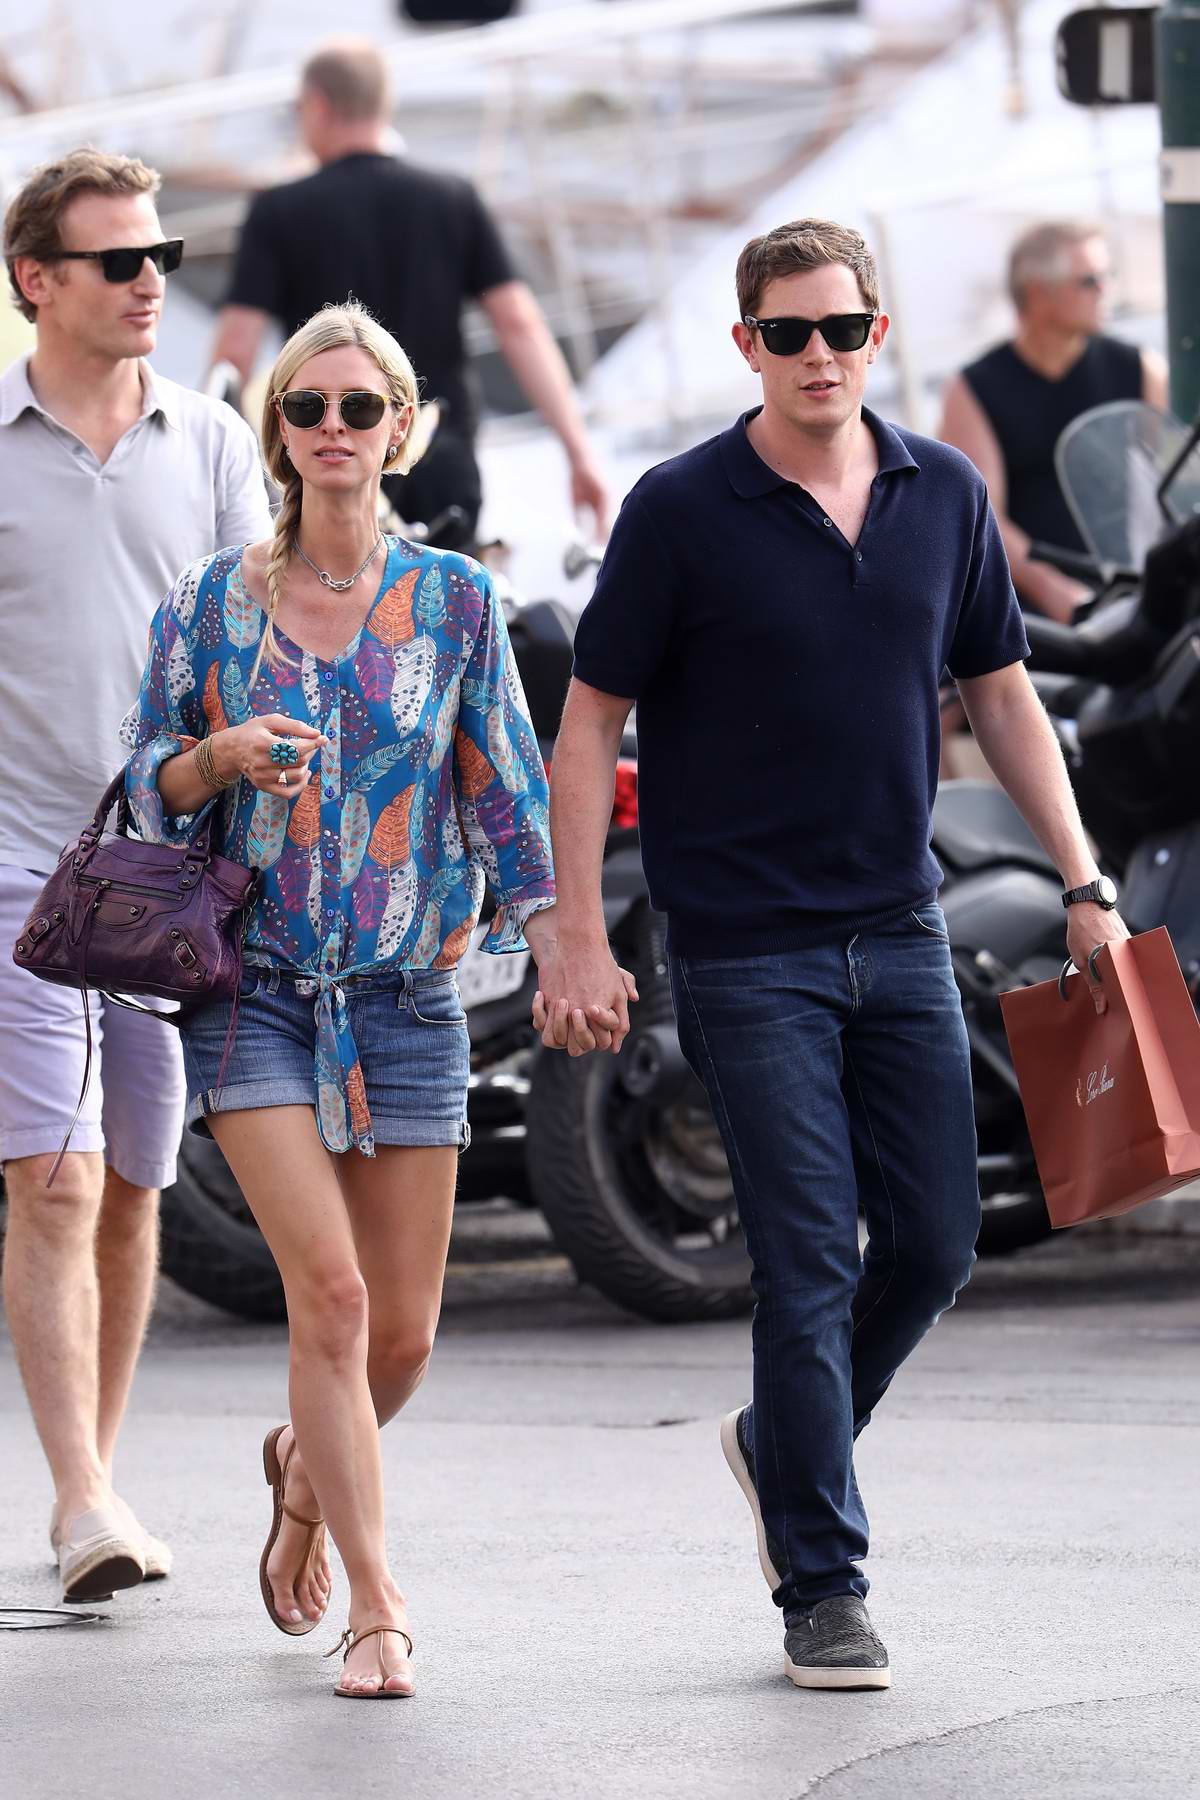 Nicky Hilton and Husband James Rothschild walking on the port of Saint-Tropez, France